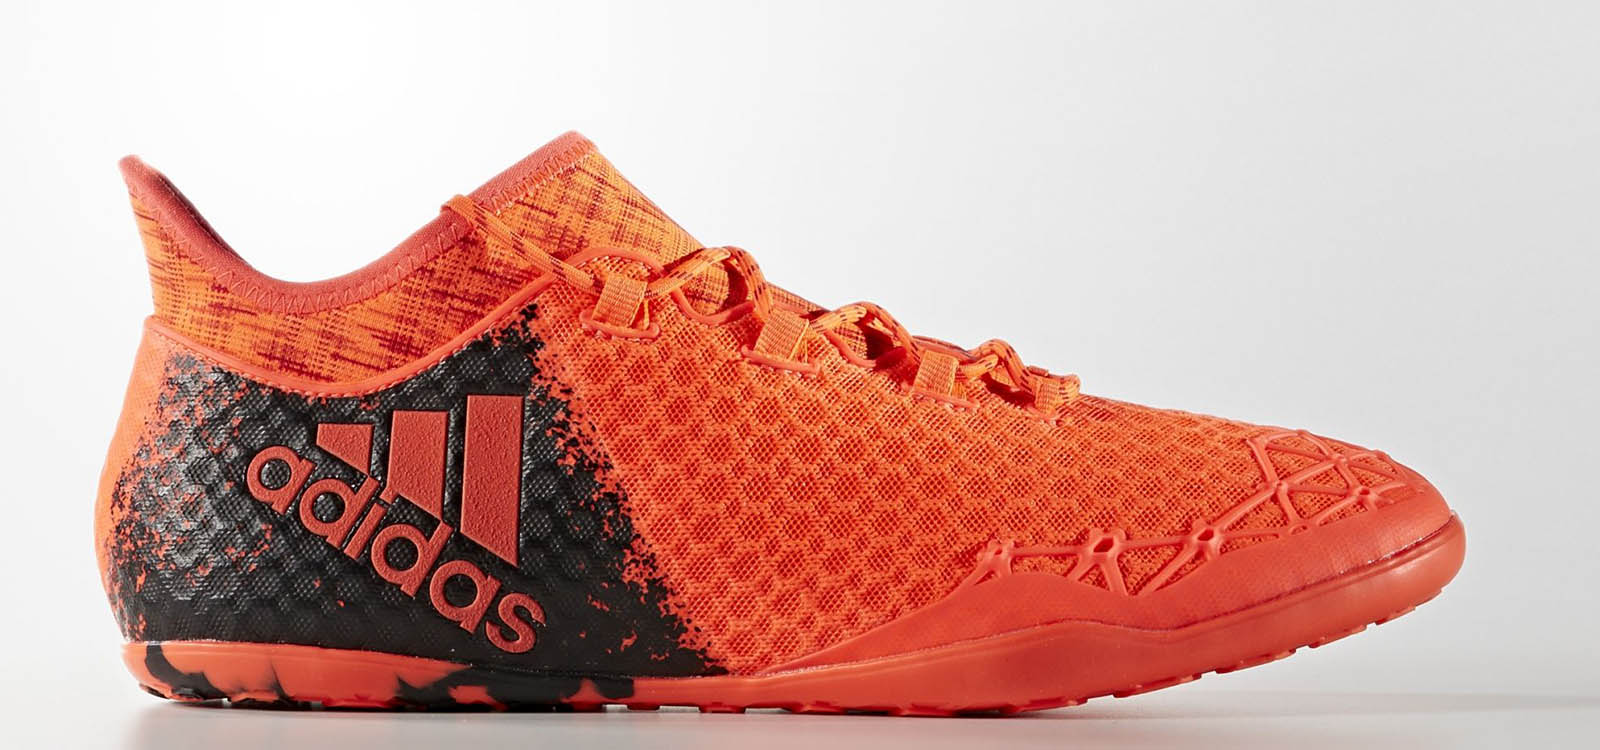 2f87f02e0144 Sale For All-New Adidas X 16 Court Boots Released